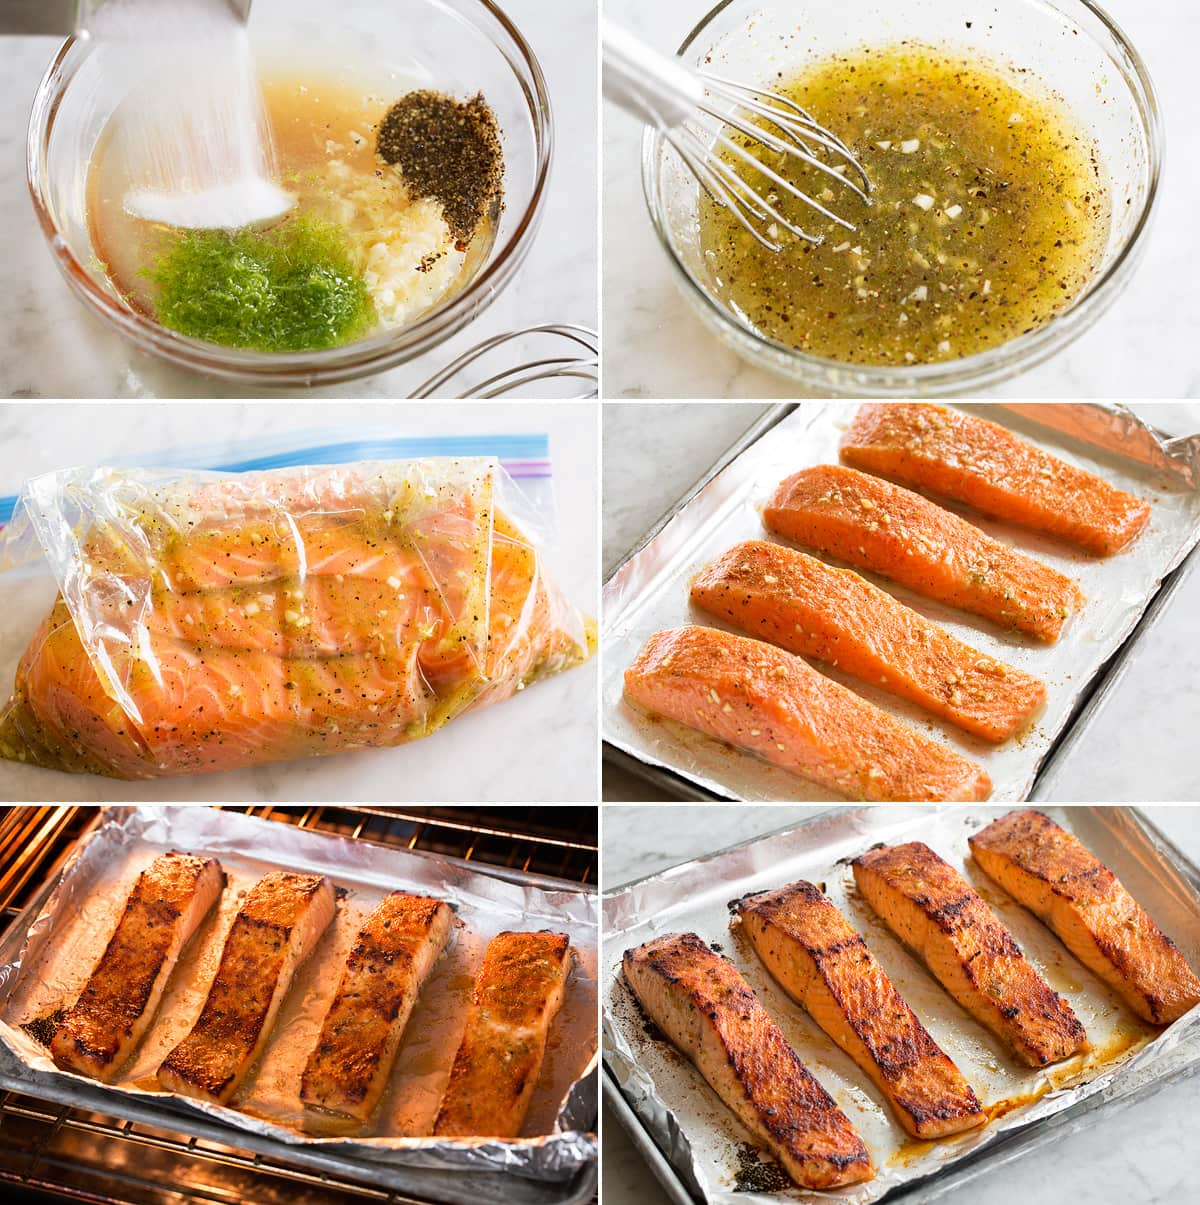 Collage of six photos showing steps of making salmon marinade, soaking salmon in marinade, and aligning on foiled lined baking sheet. Then it's shown under the broiler and completed.